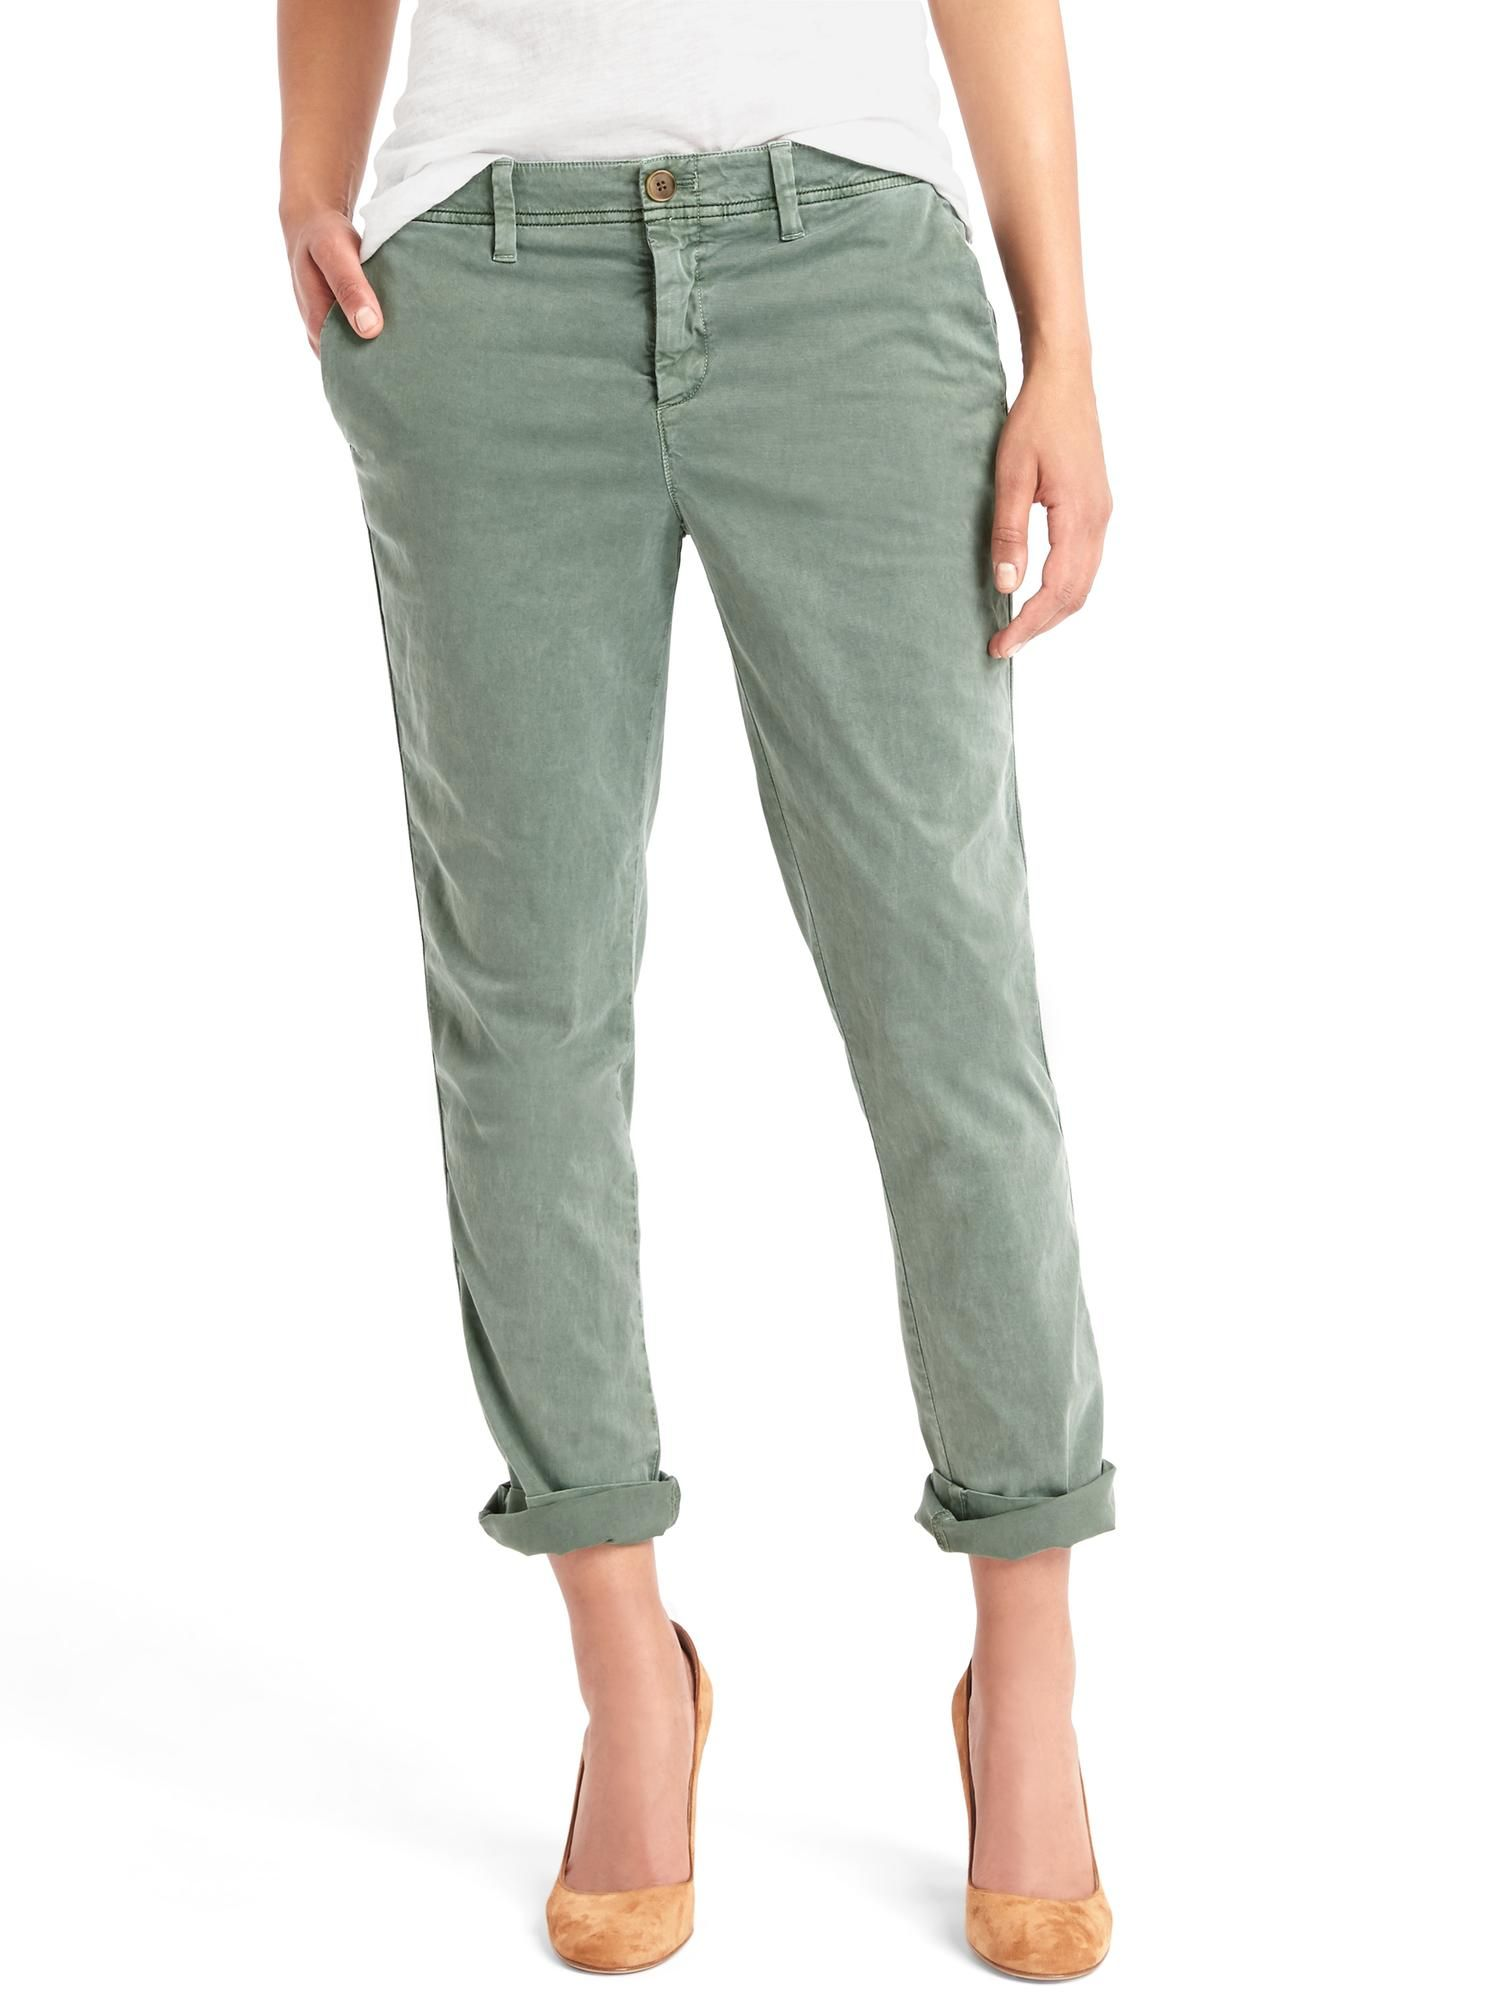 aeb350f7ec7 i have these Gap Girlfriend Chino pants in green and also in Khaki. i love  them so much! they look good with tops that flow a little above my belly  button